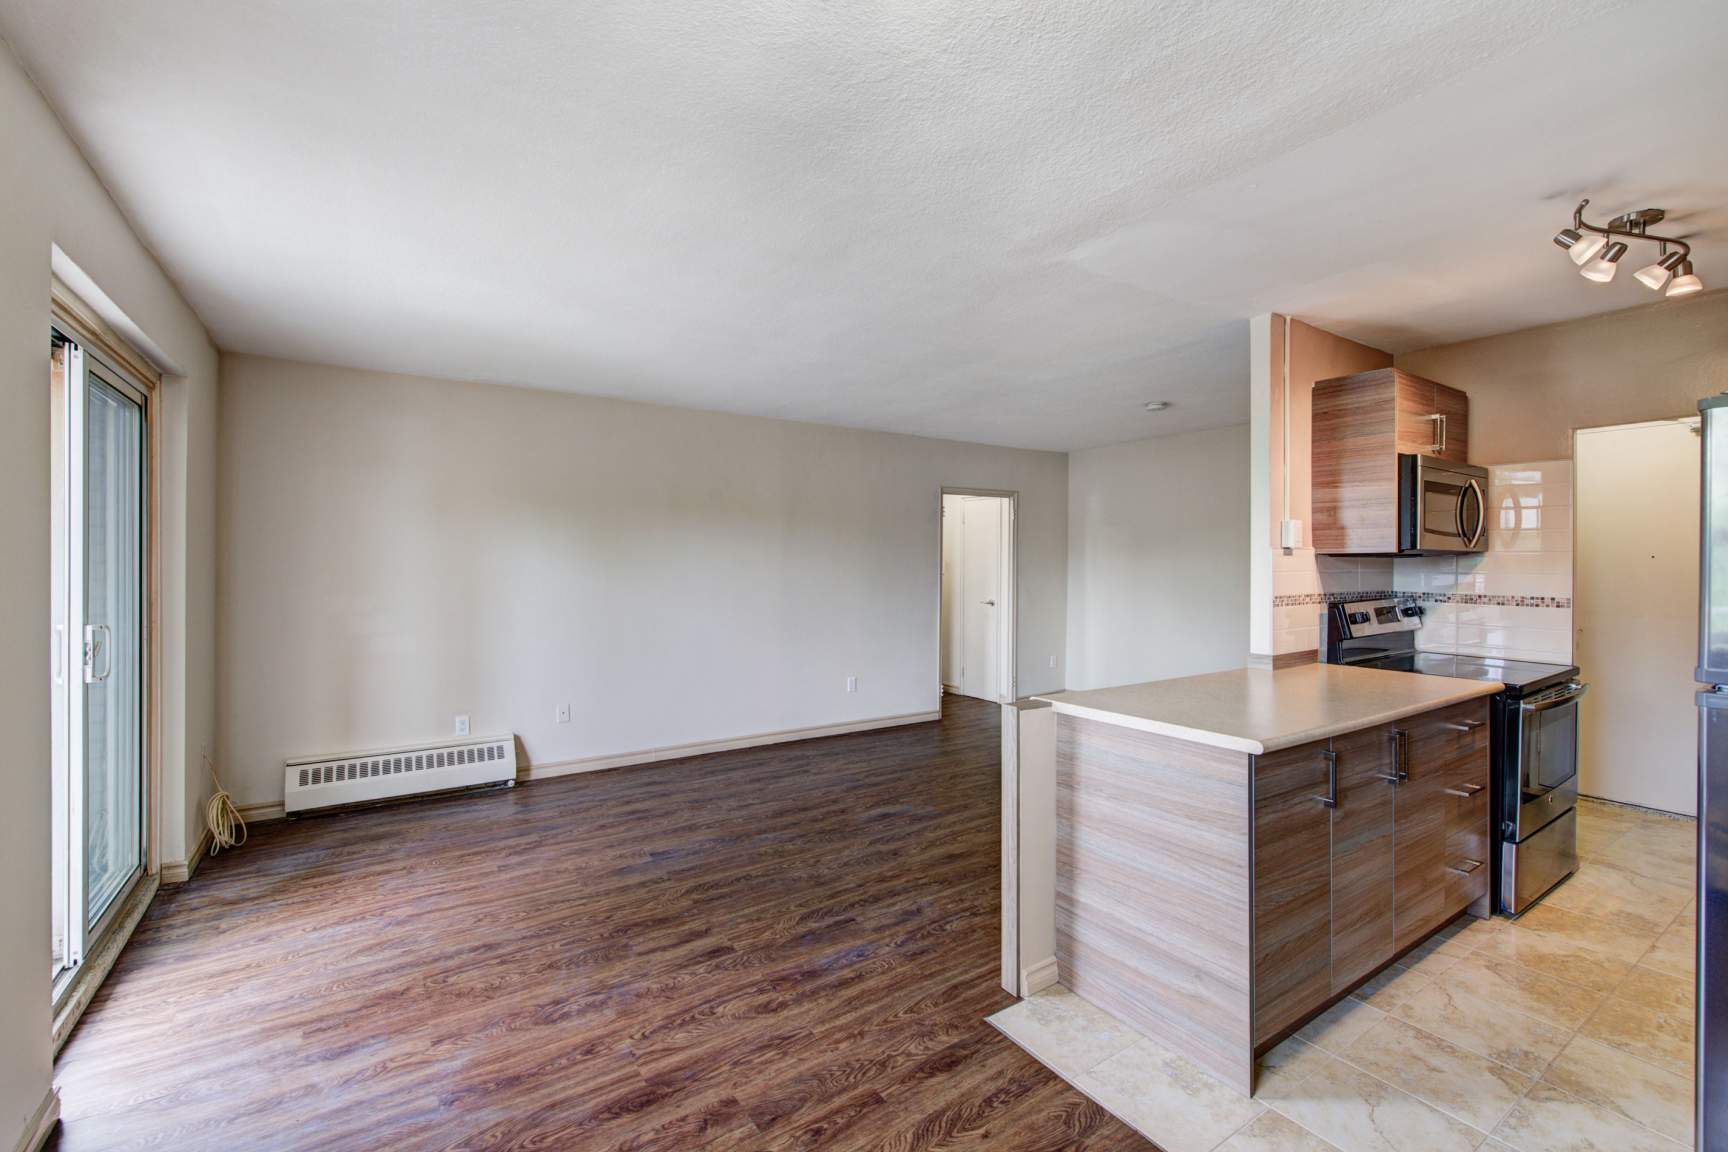 Studio / Bachelor Apartments for rent in Etobicoke at Lake Promenade Community - Photo 10 - RentersPages – L168089